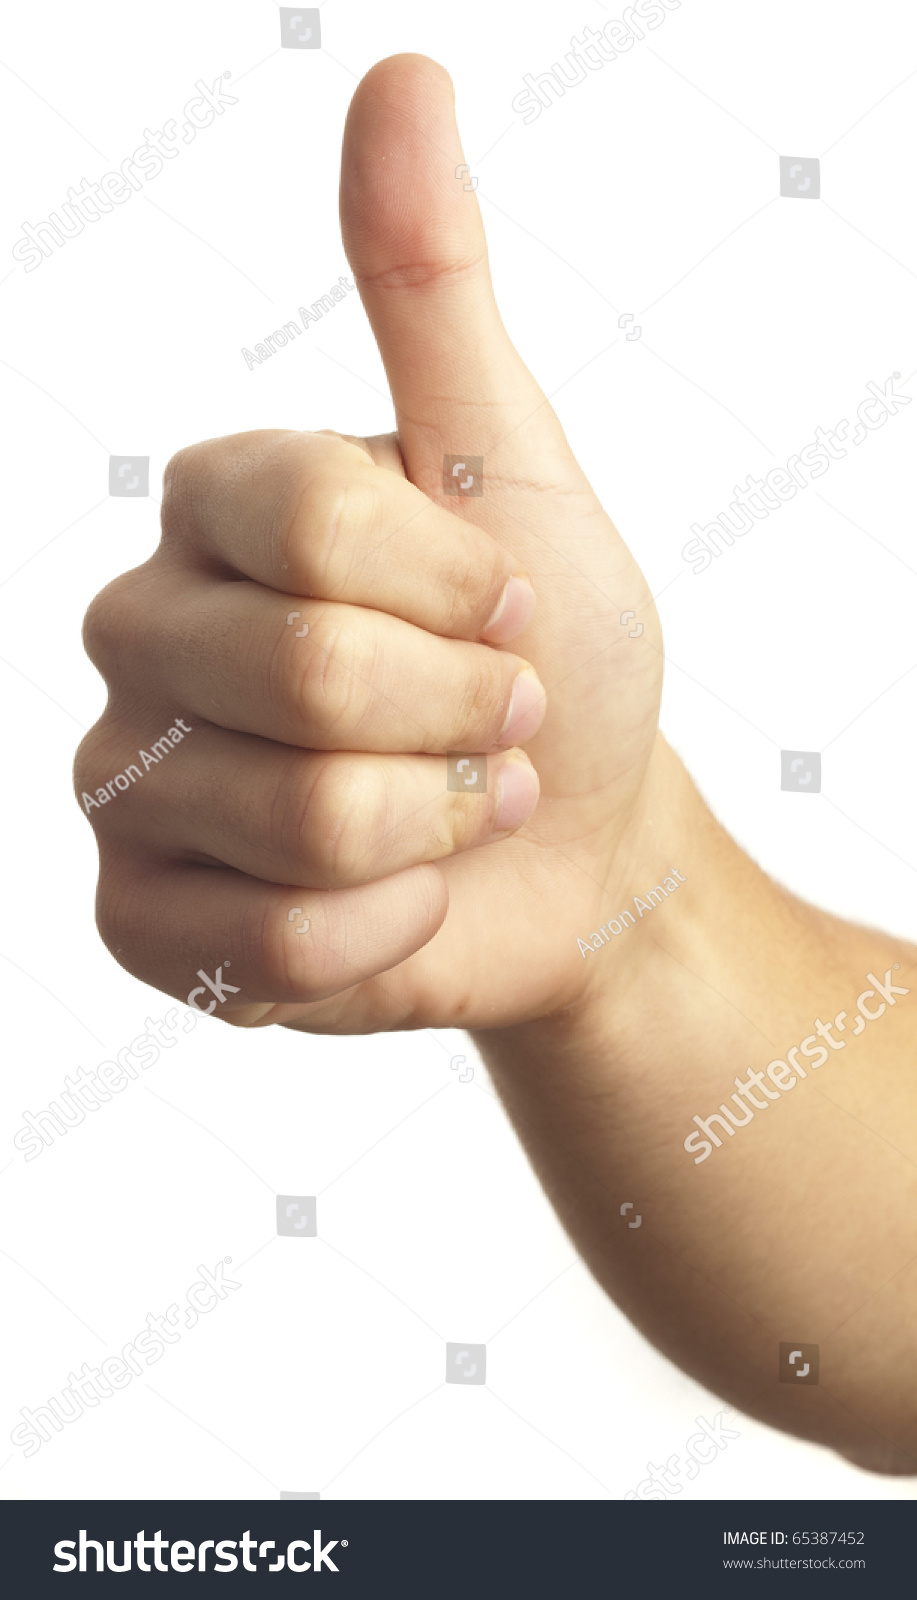 Hand symbol that means good on stock photo 65387452 shutterstock hand symbol that means good on white background buycottarizona Choice Image